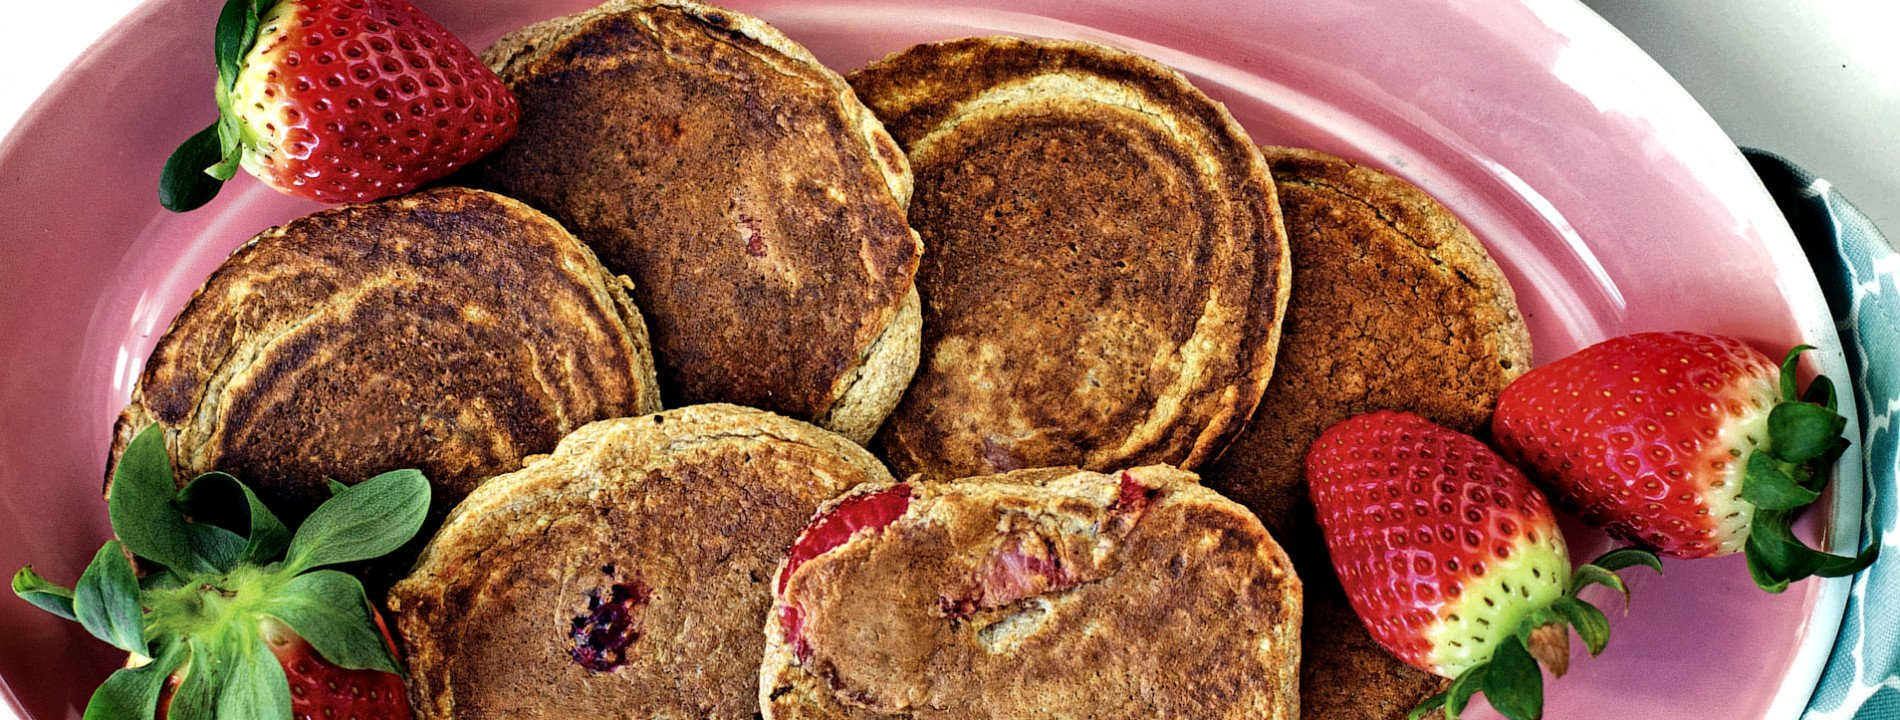 Mini Oat and Strawberry Pancakes